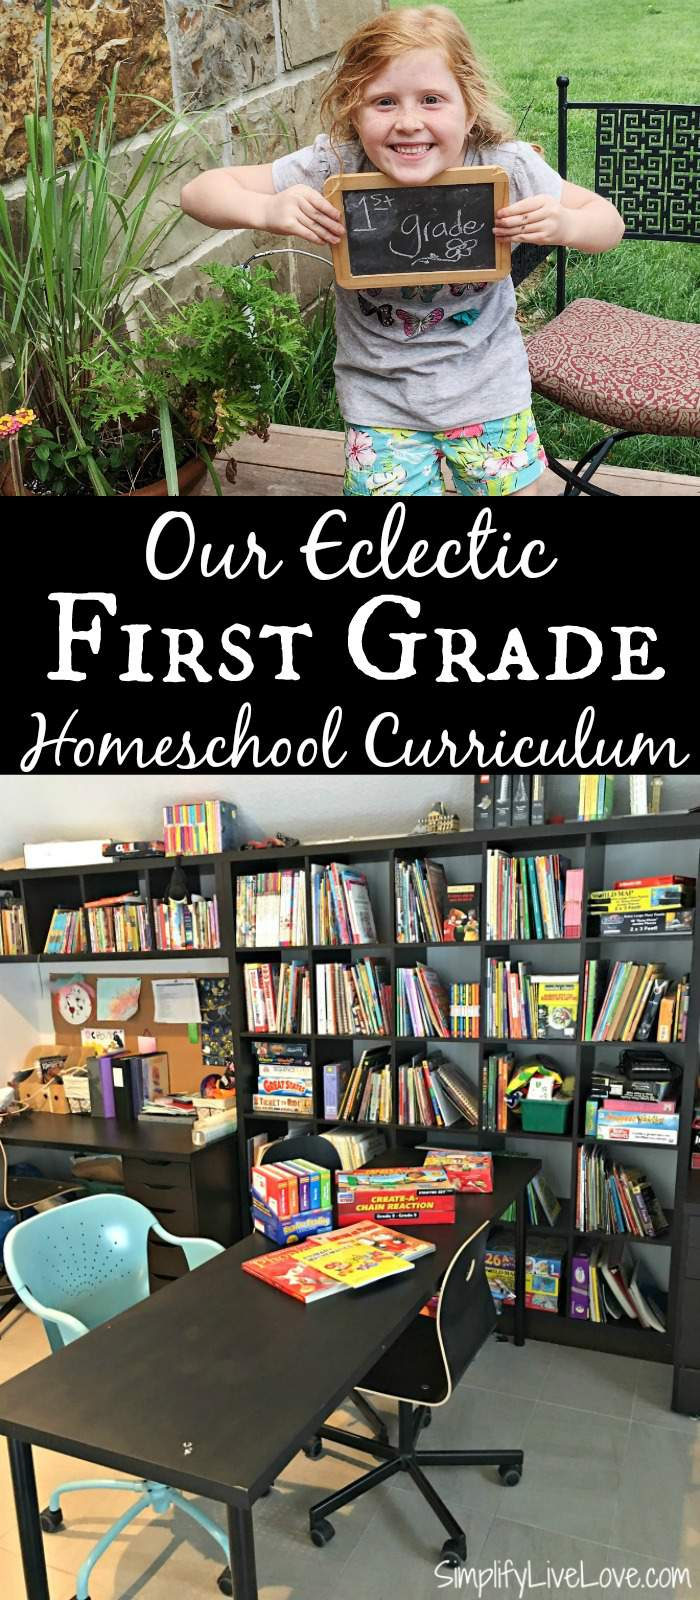 Our Eclectic First Grade Homeschool Curriculum. Resources and links to products we've used and loved to teach first grade.